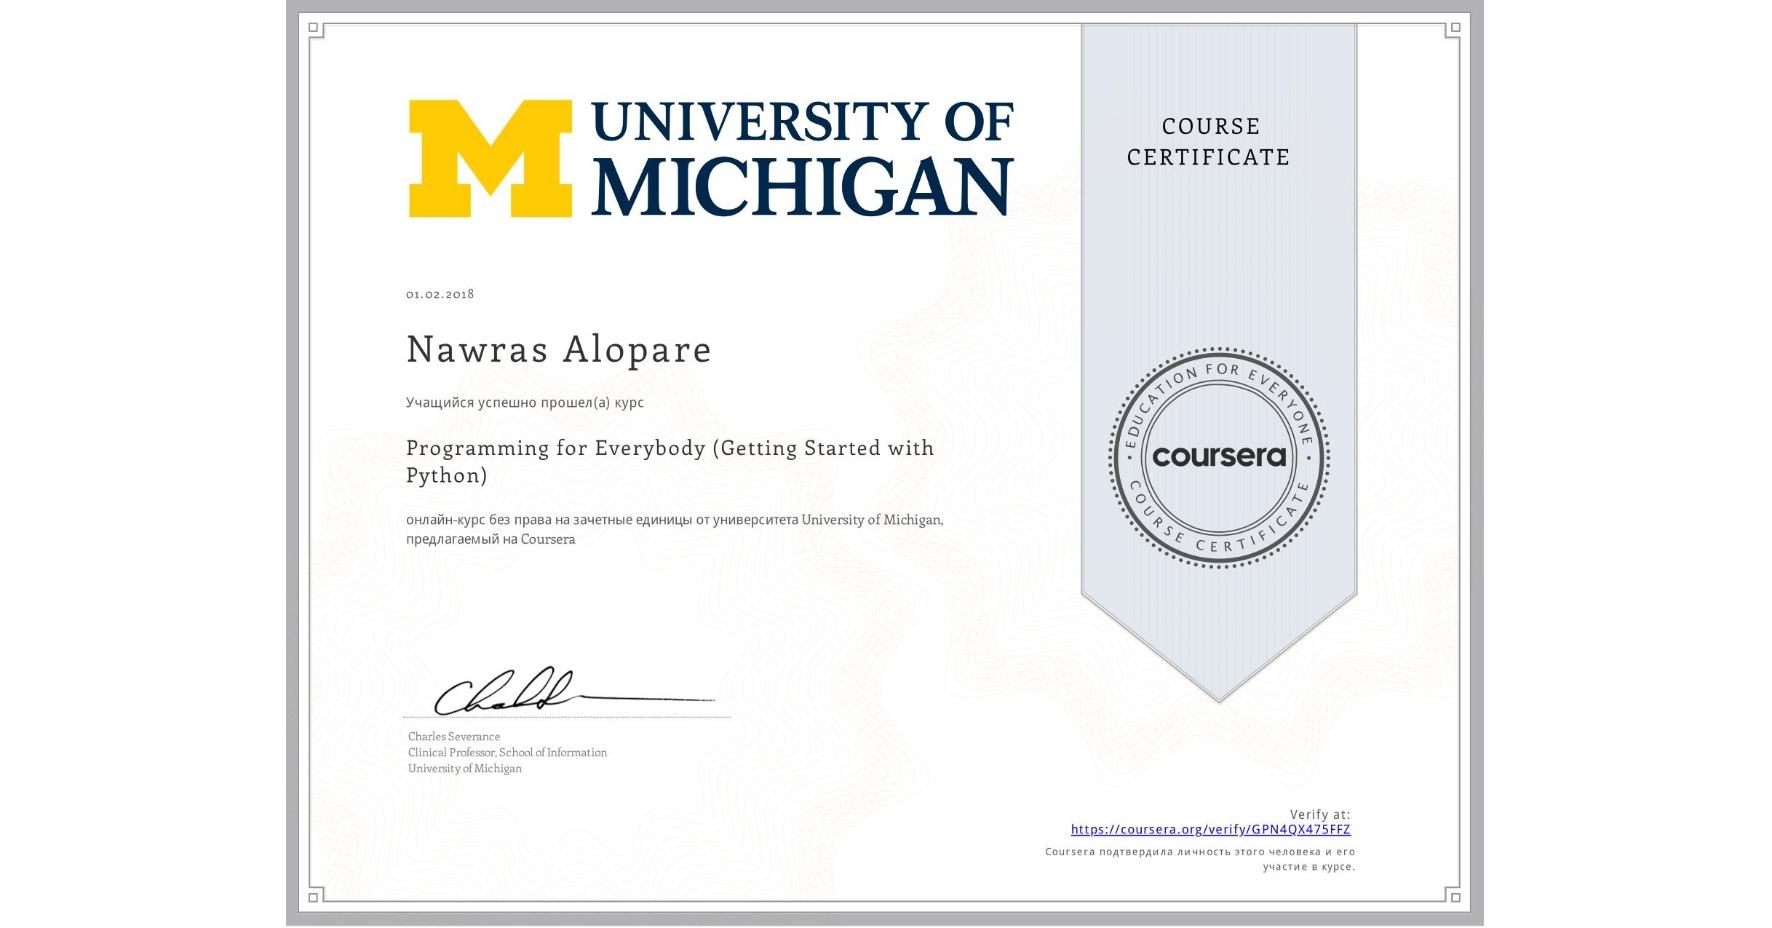 View certificate for Nawras Alopare, Programming for Everybody (Getting Started with Python), an online non-credit course authorized by University of Michigan and offered through Coursera